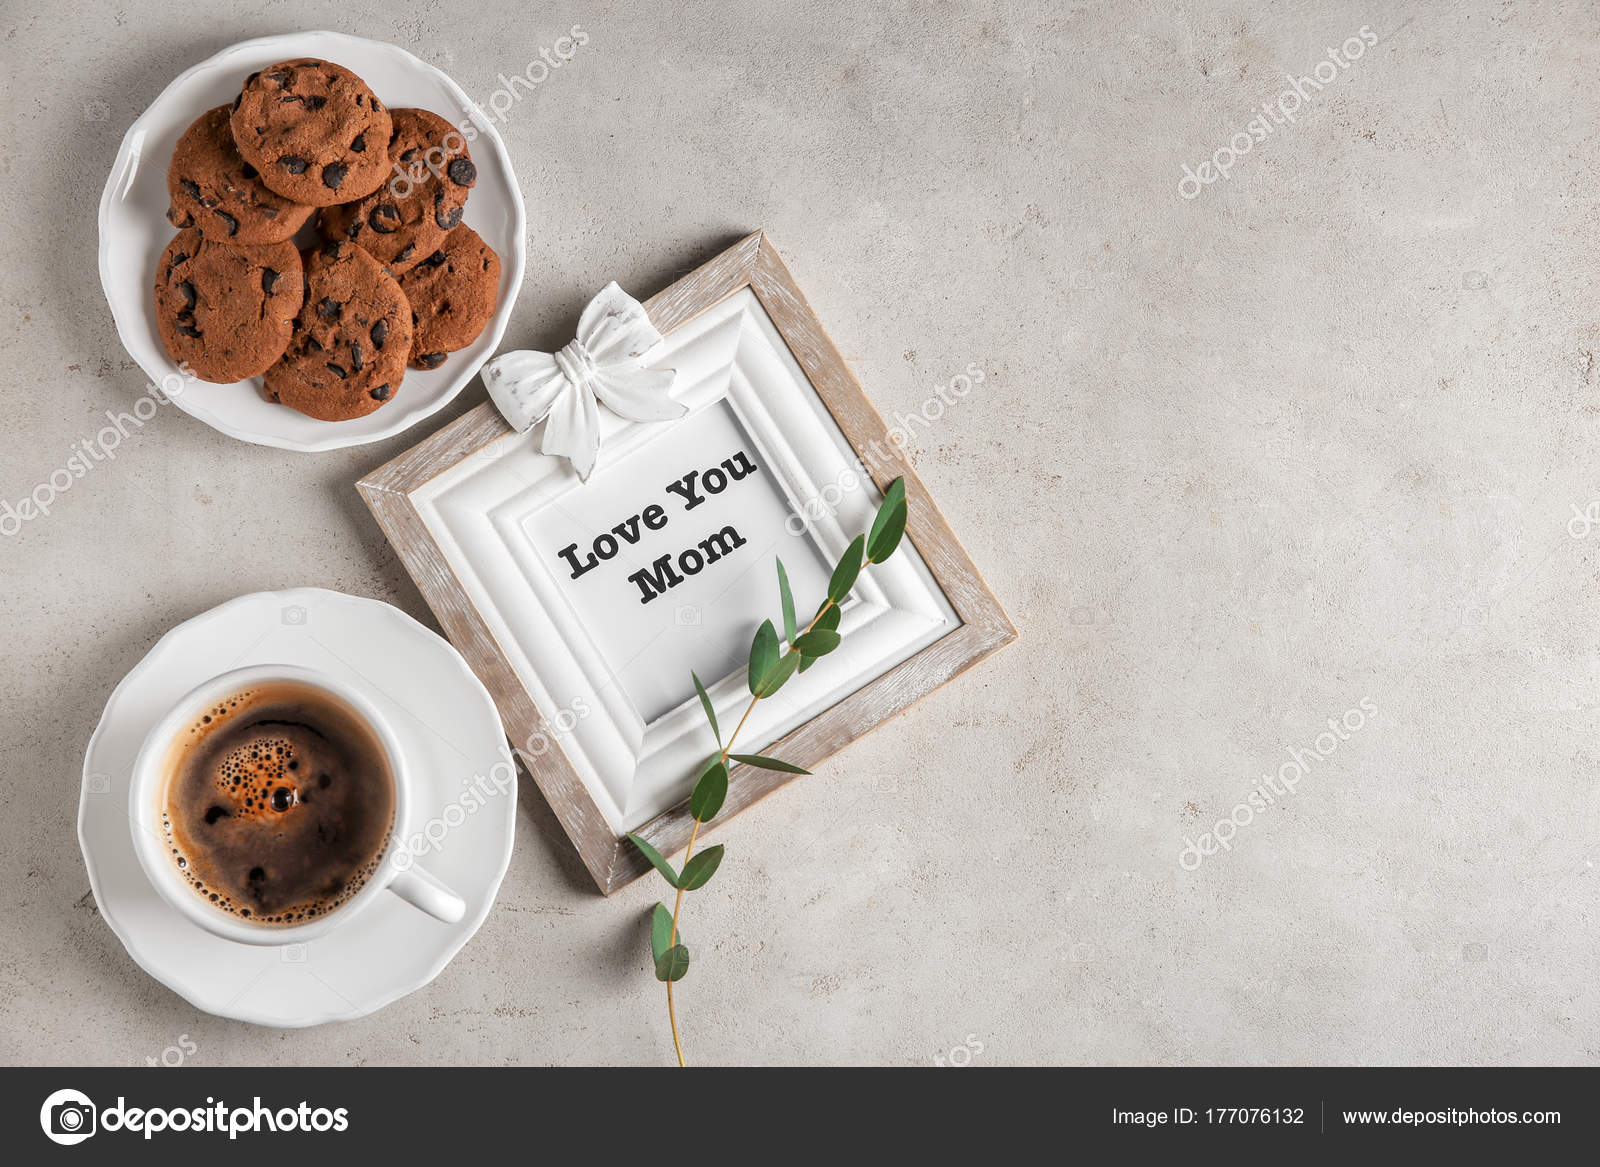 Cup of coffee, chocolate cookies and photo frame with words \